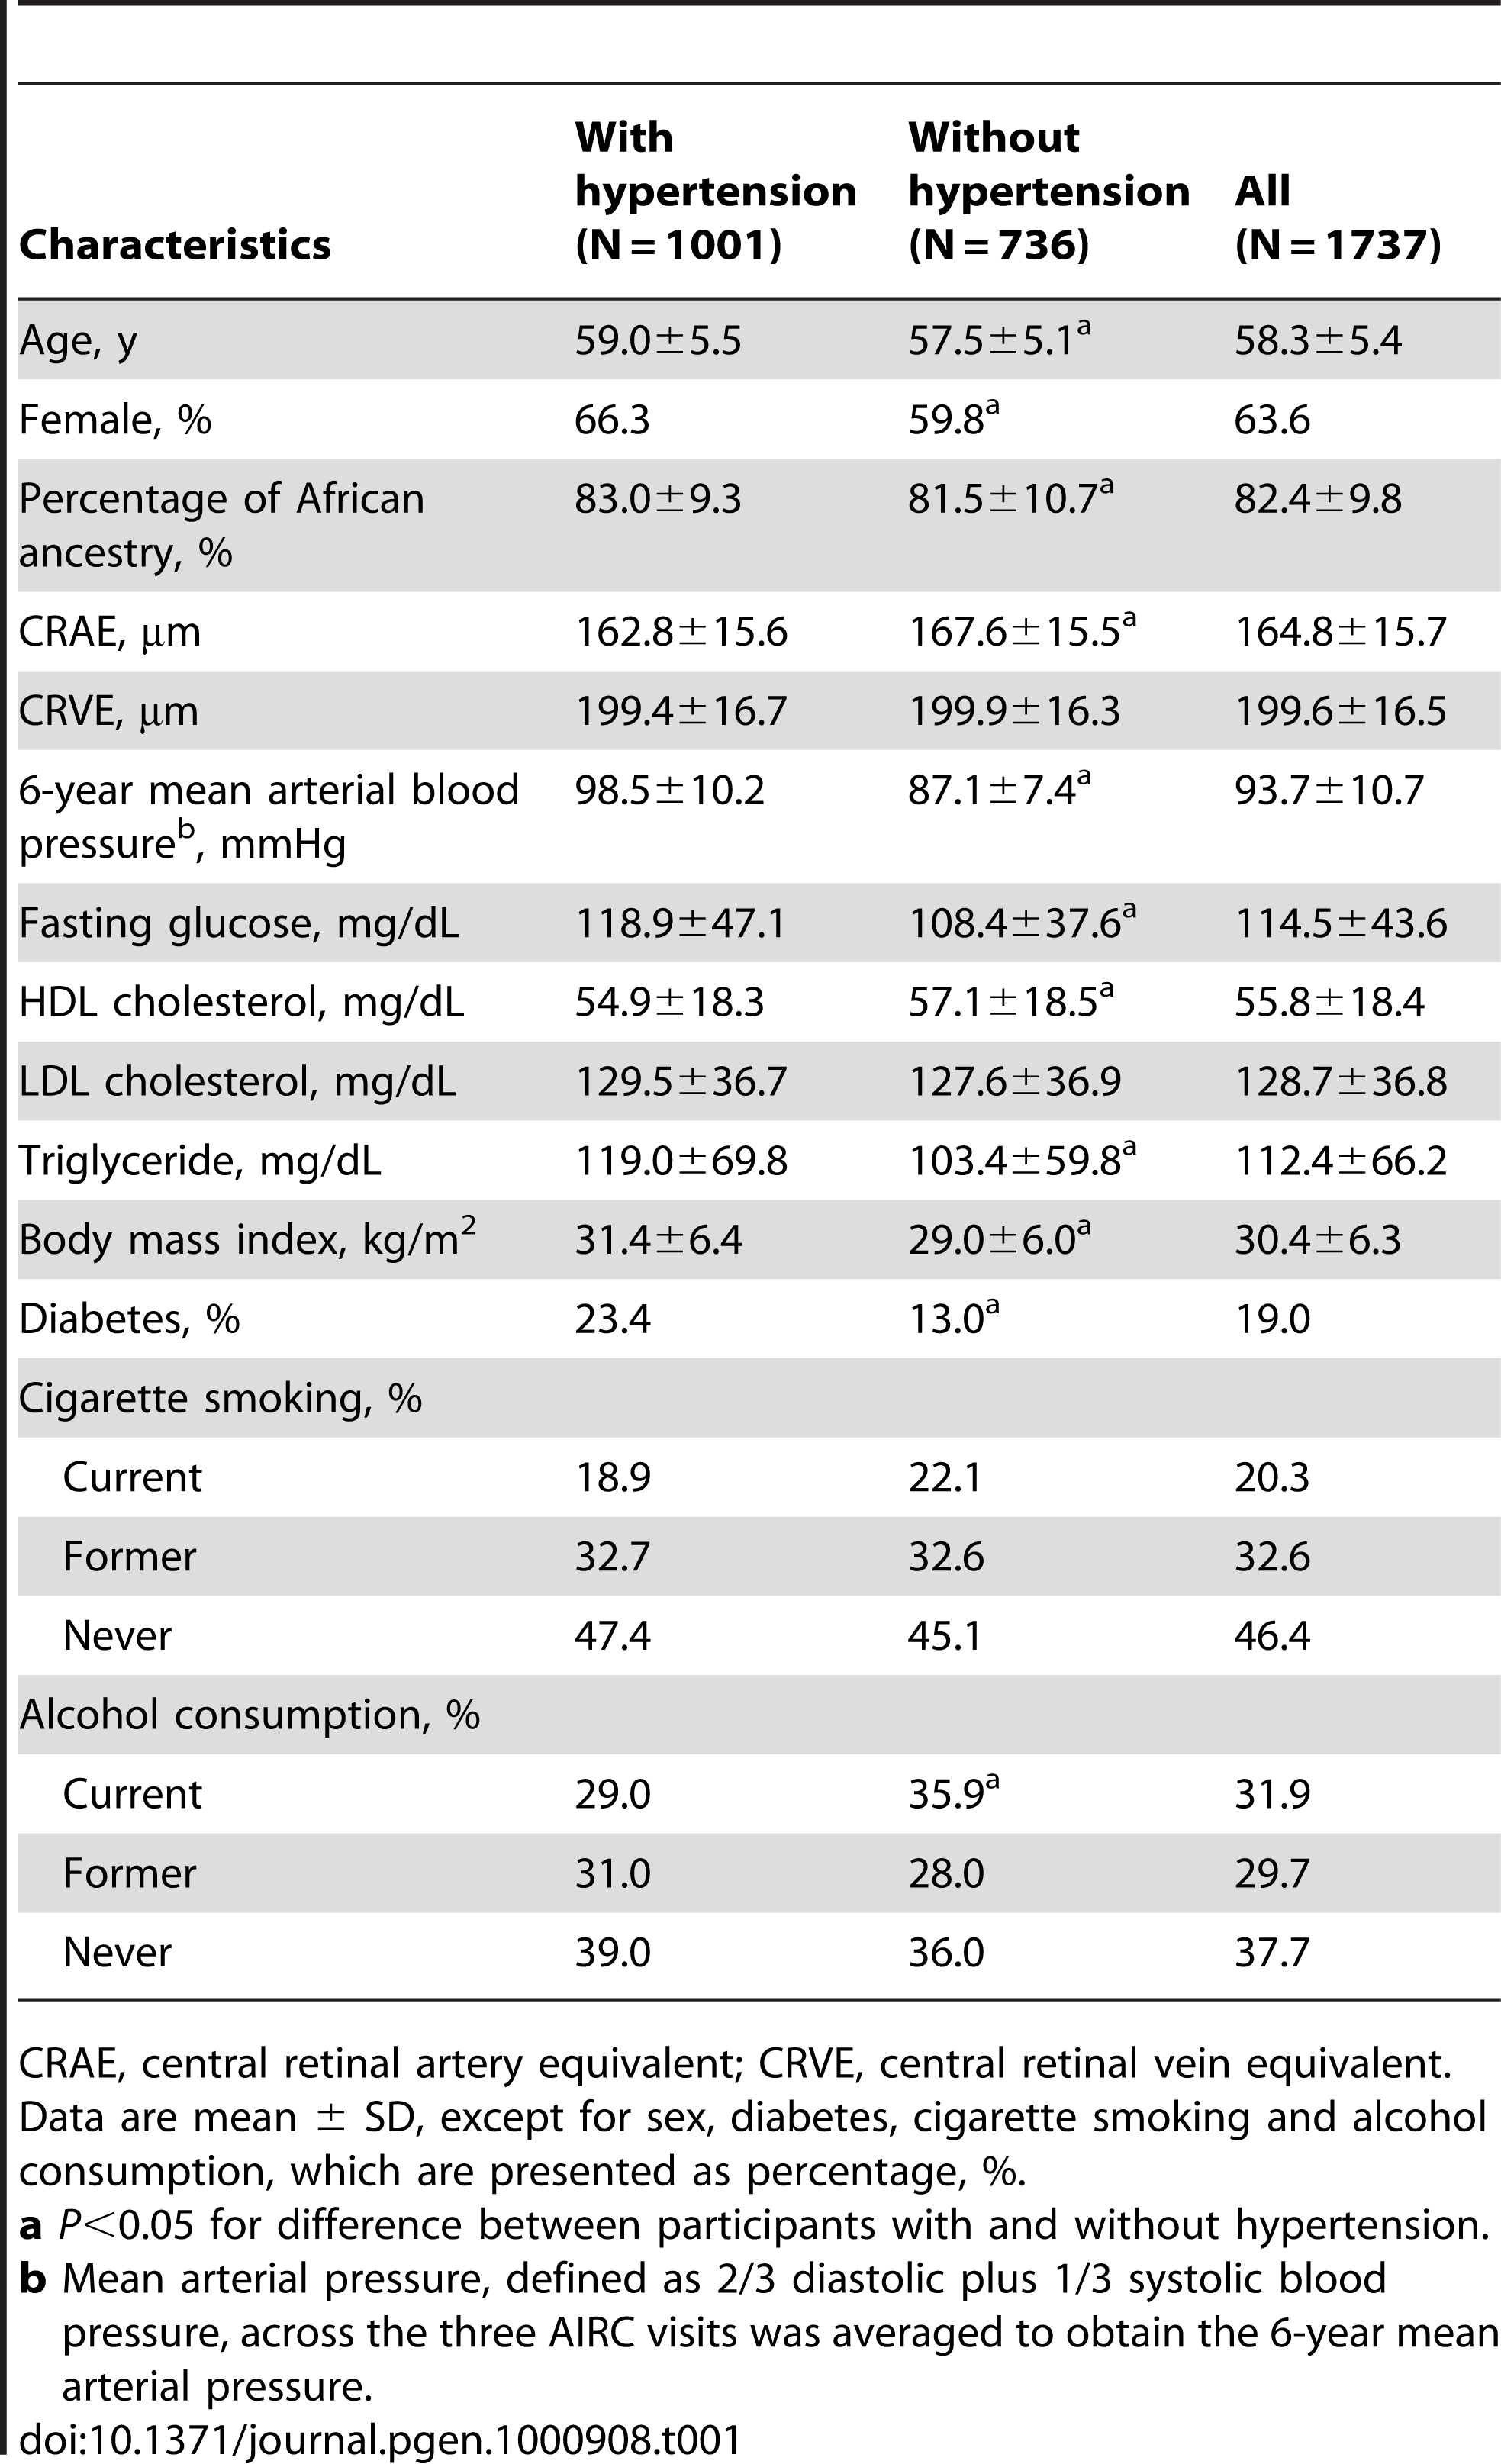 Characteristics of the study participants by hypertension status.